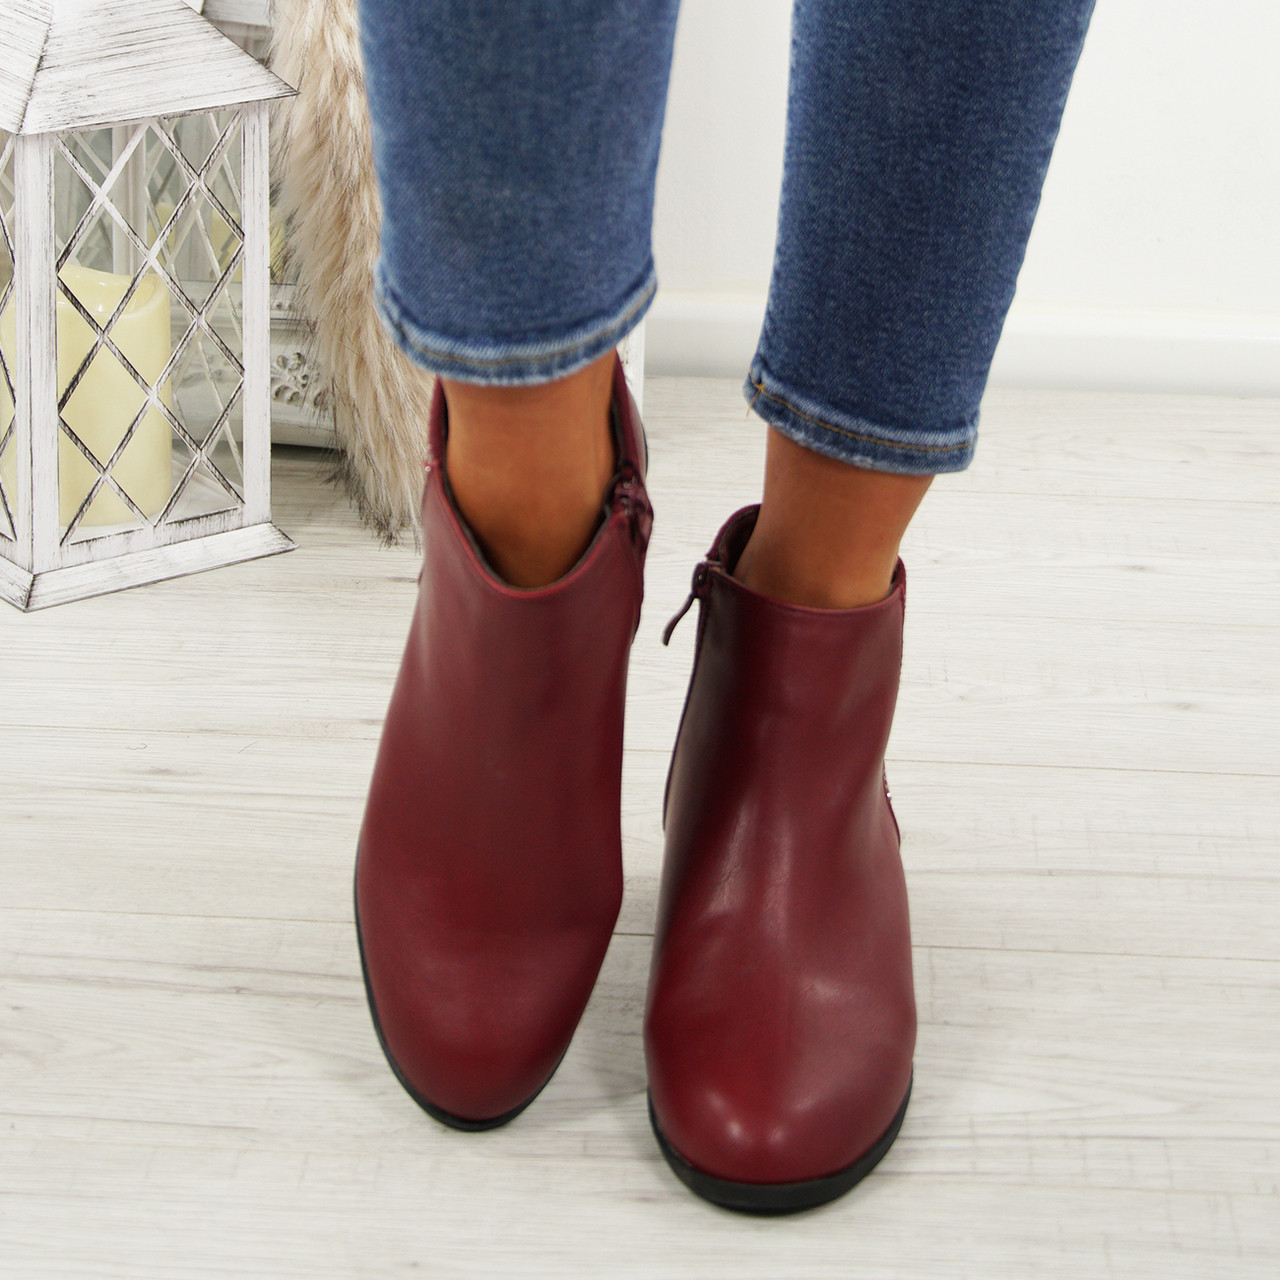 brand new release date men/man Nipa Red Pixie Studded Boots